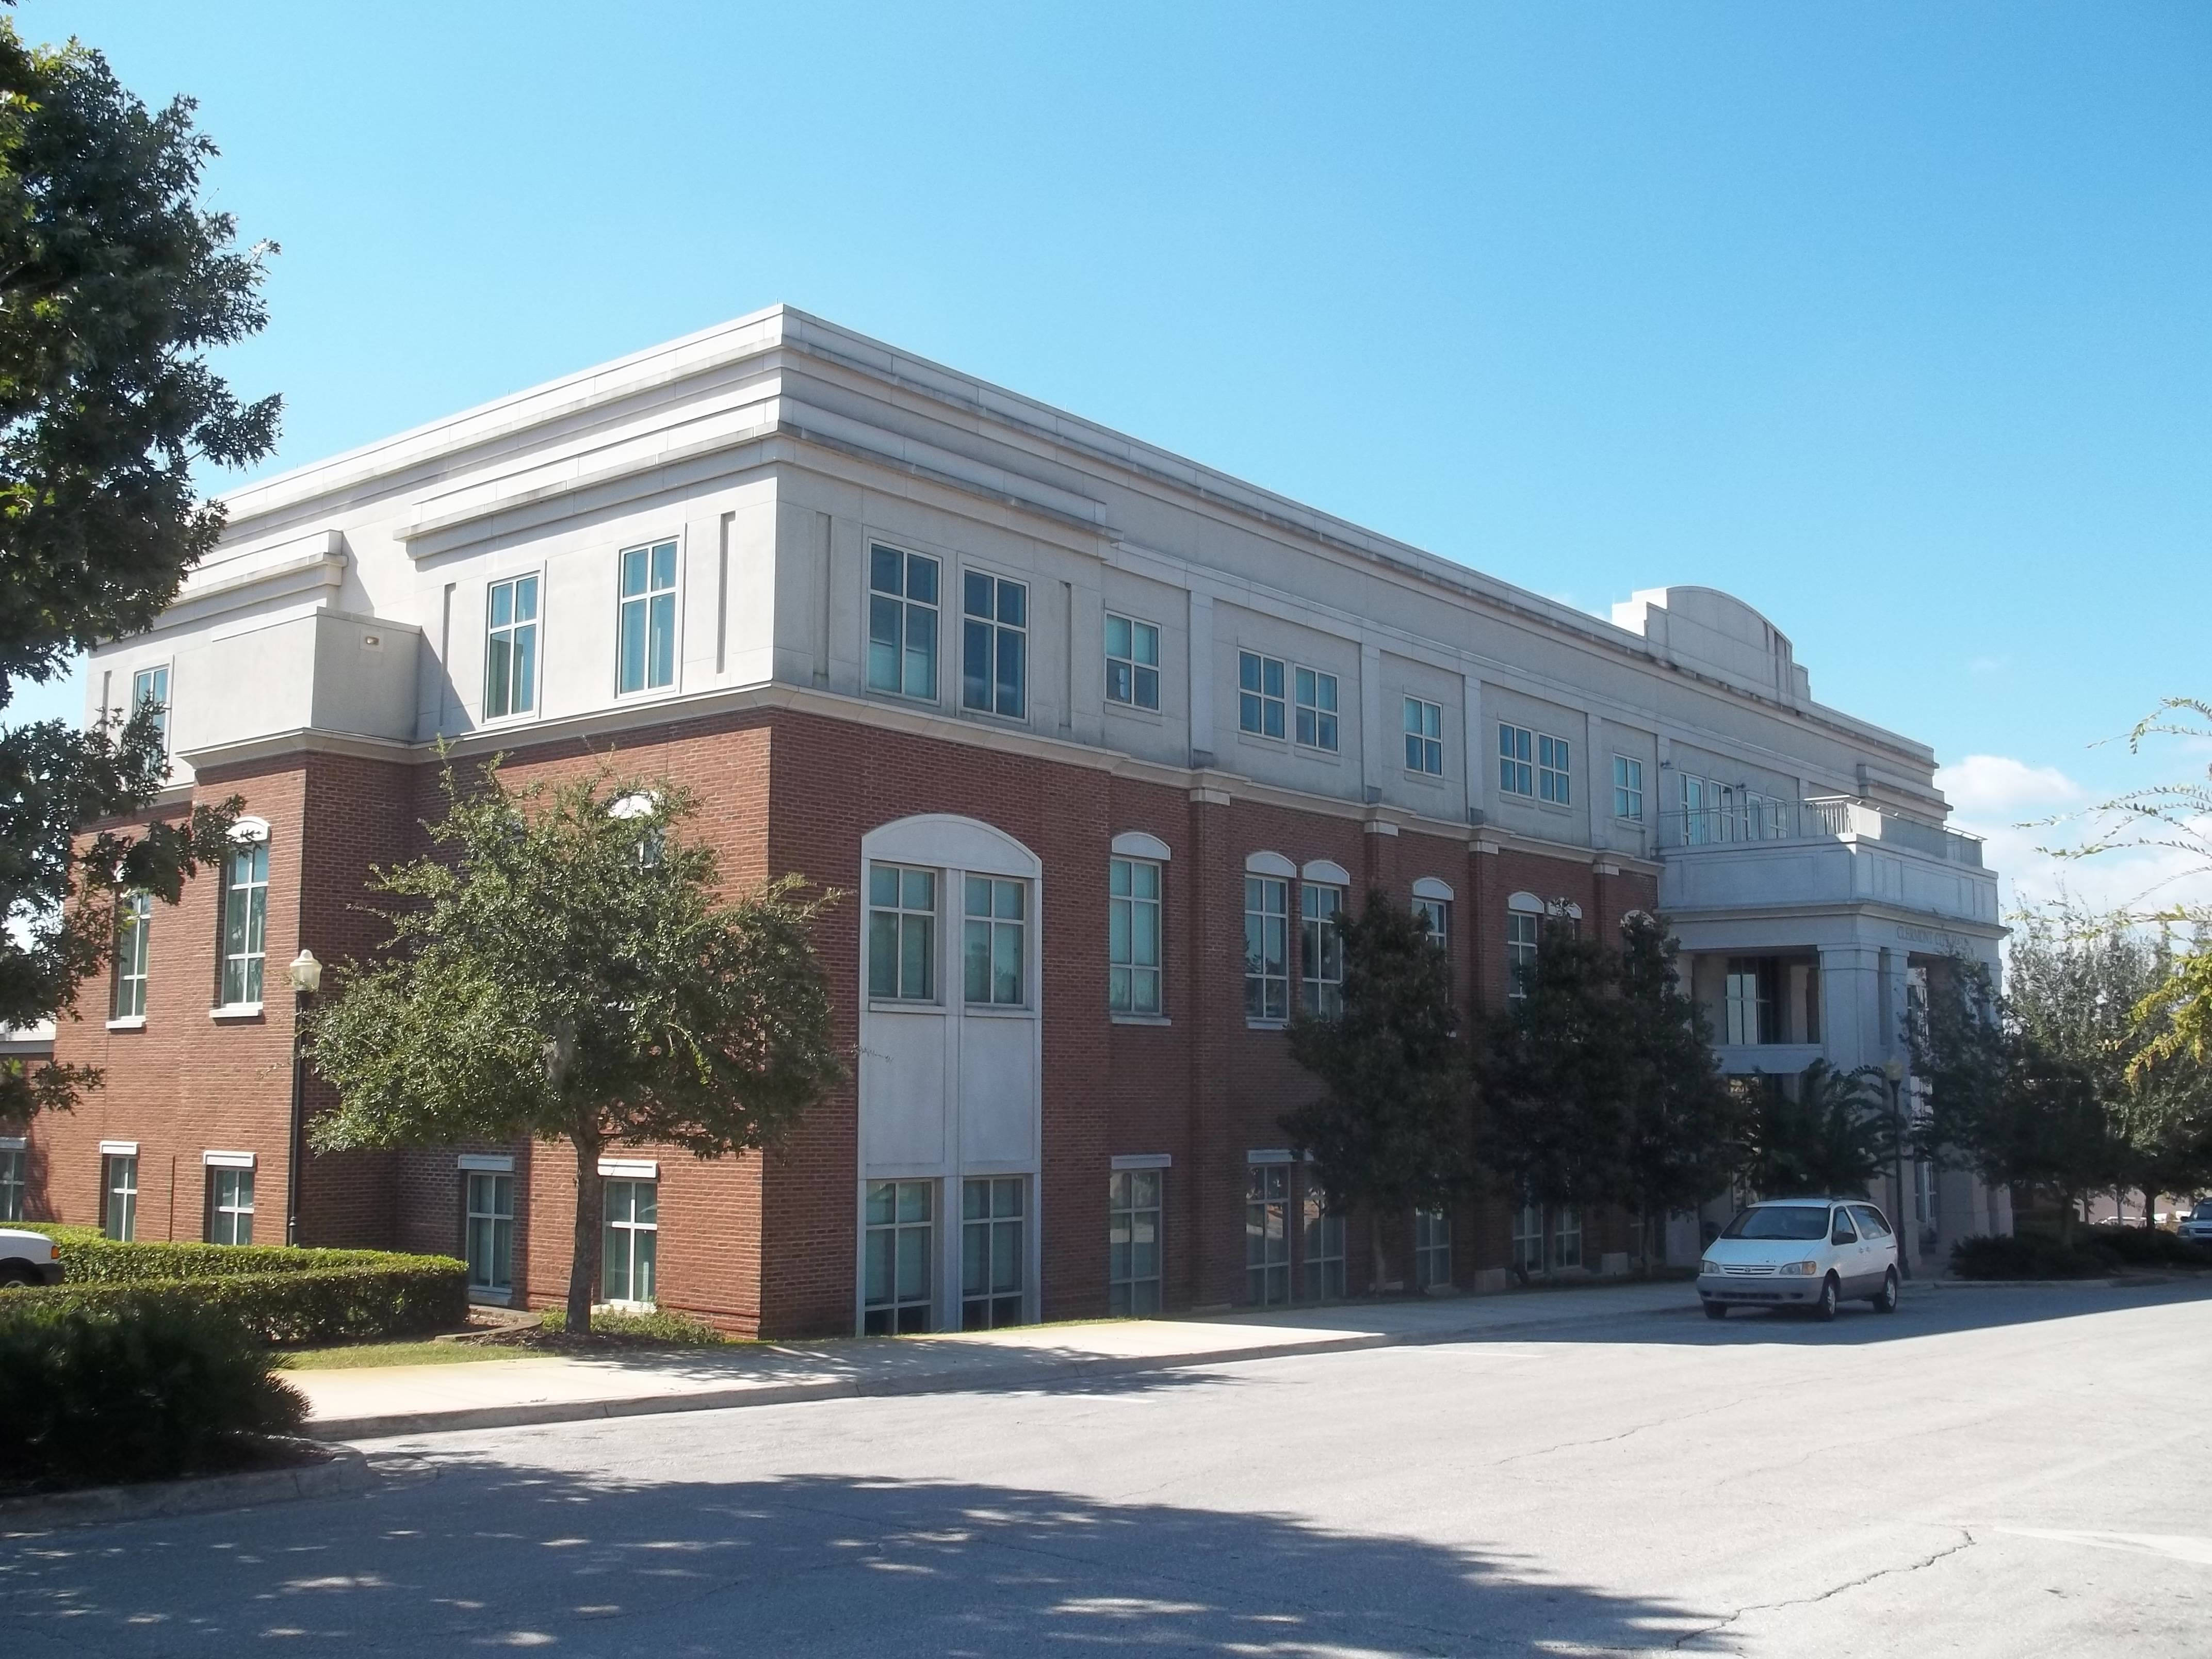 PDCS Florida Building Plans Examiners & Inspection Services